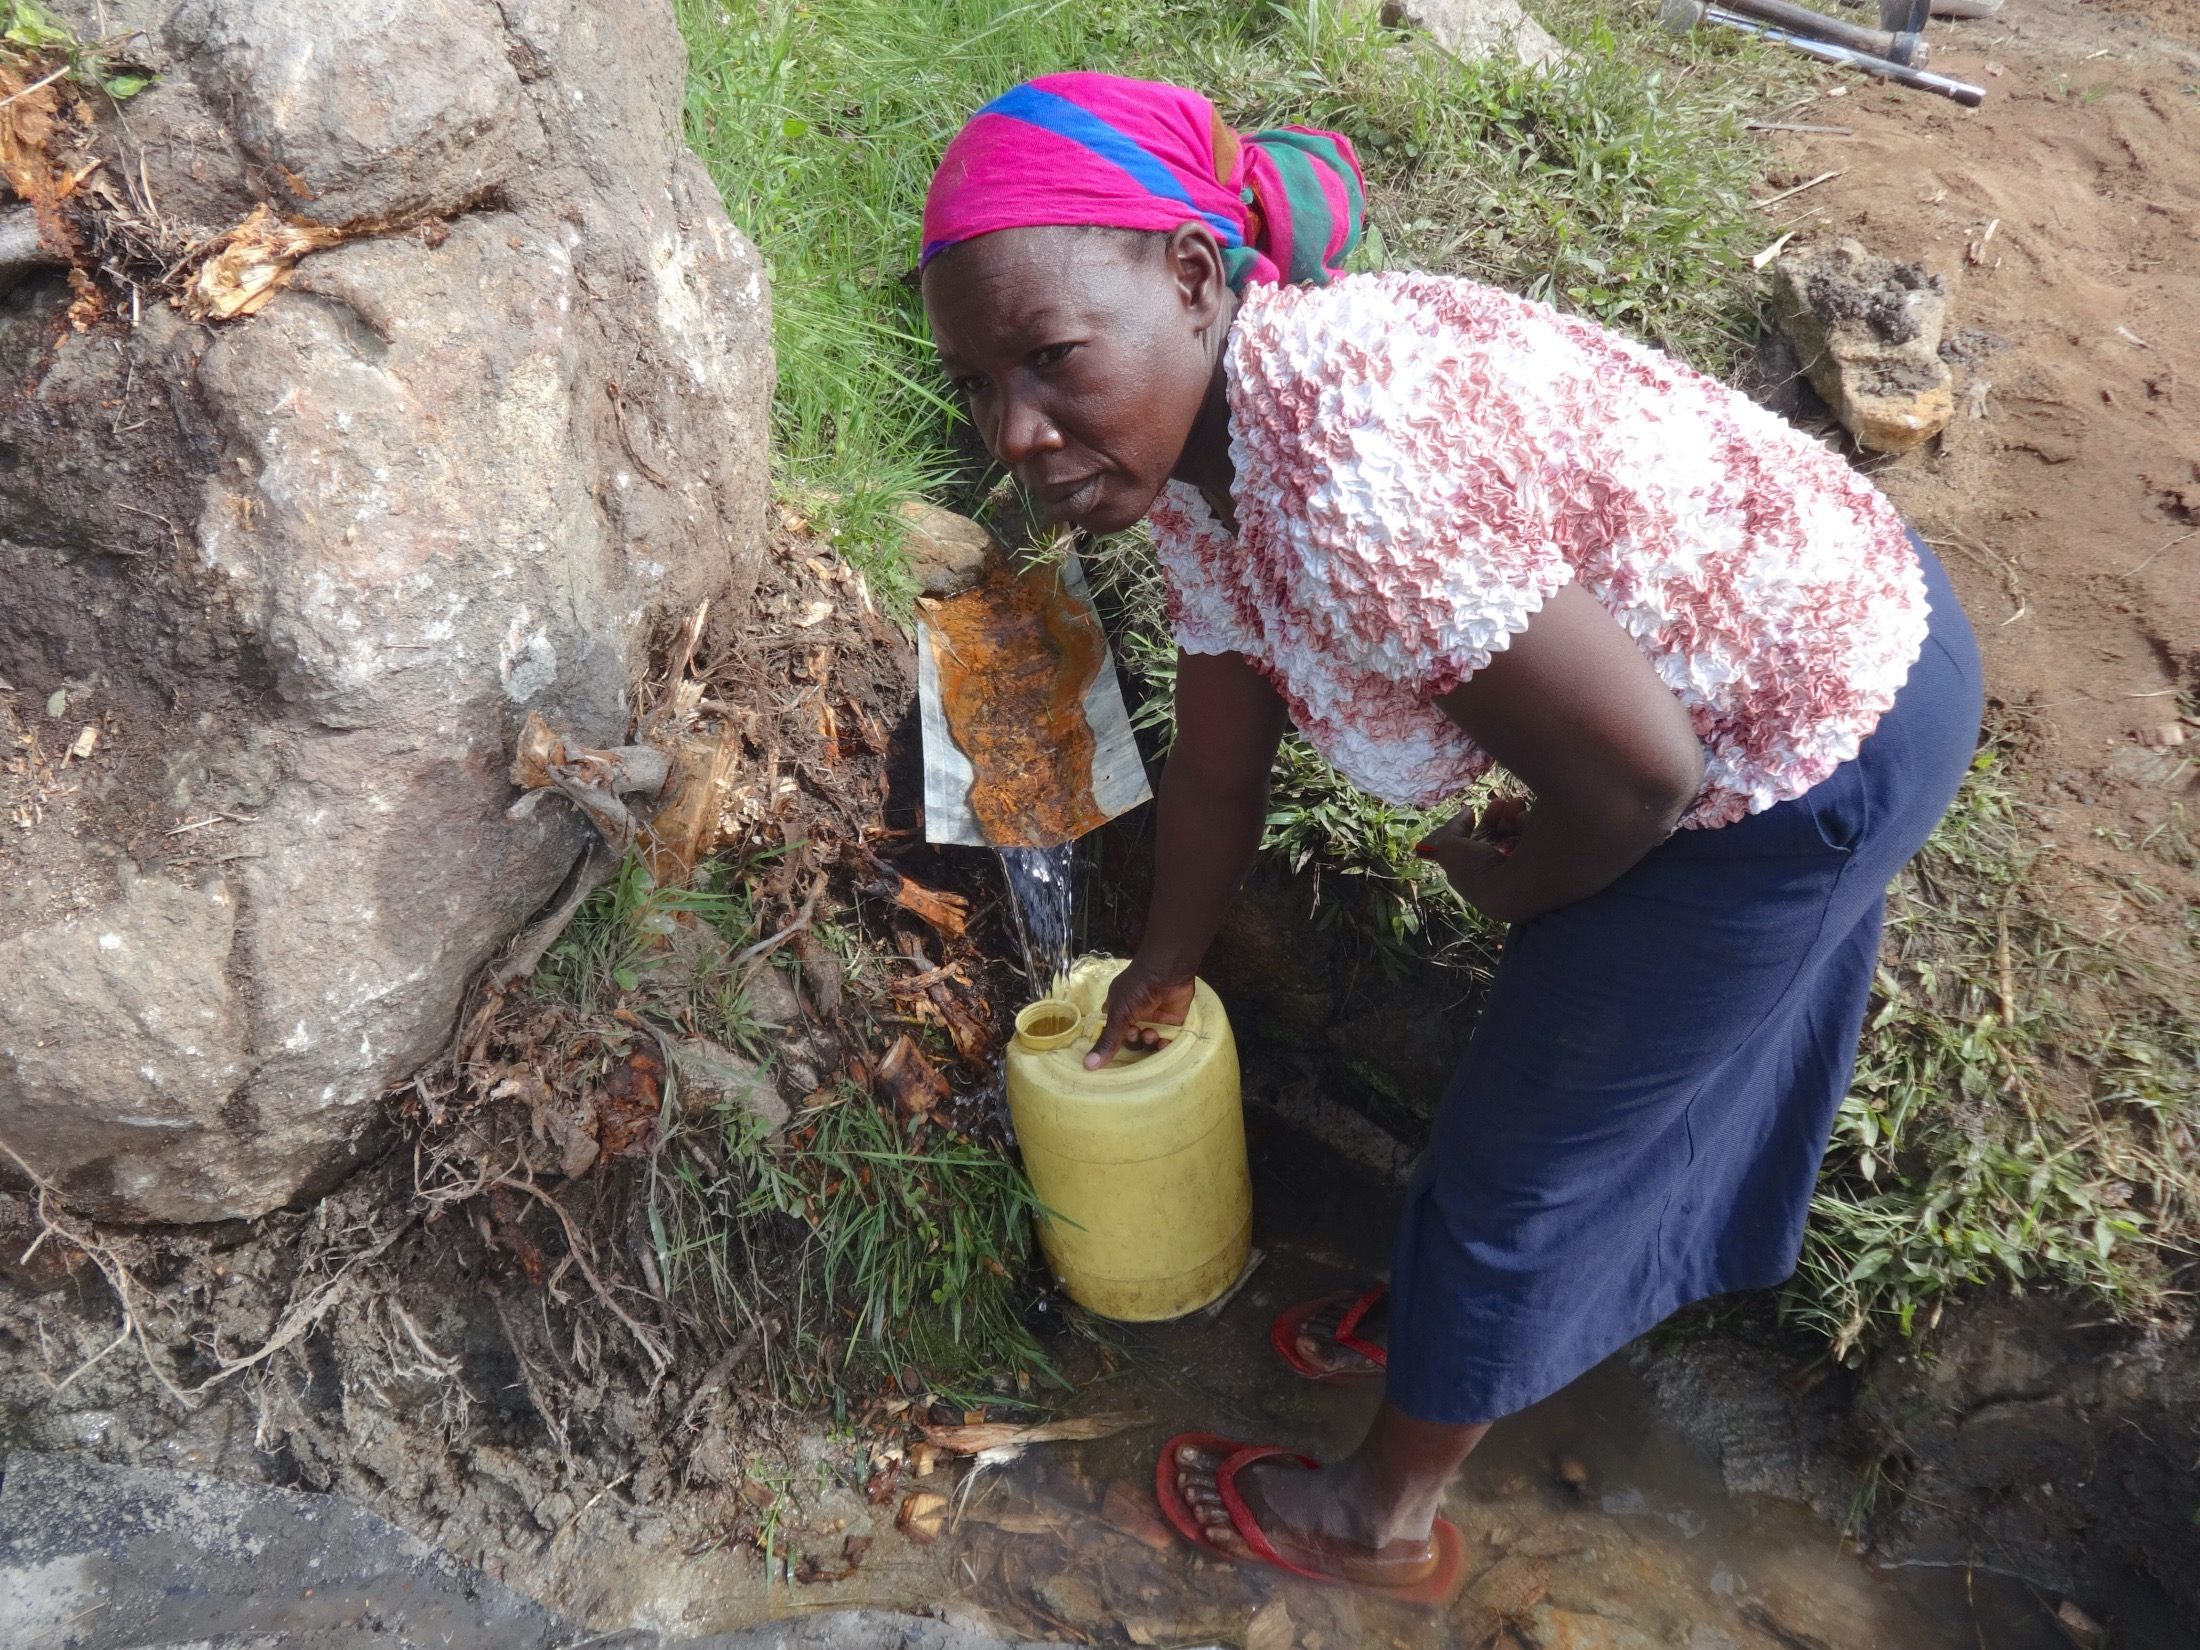 The Water Project : 26-kenya20183-collecting-water-2